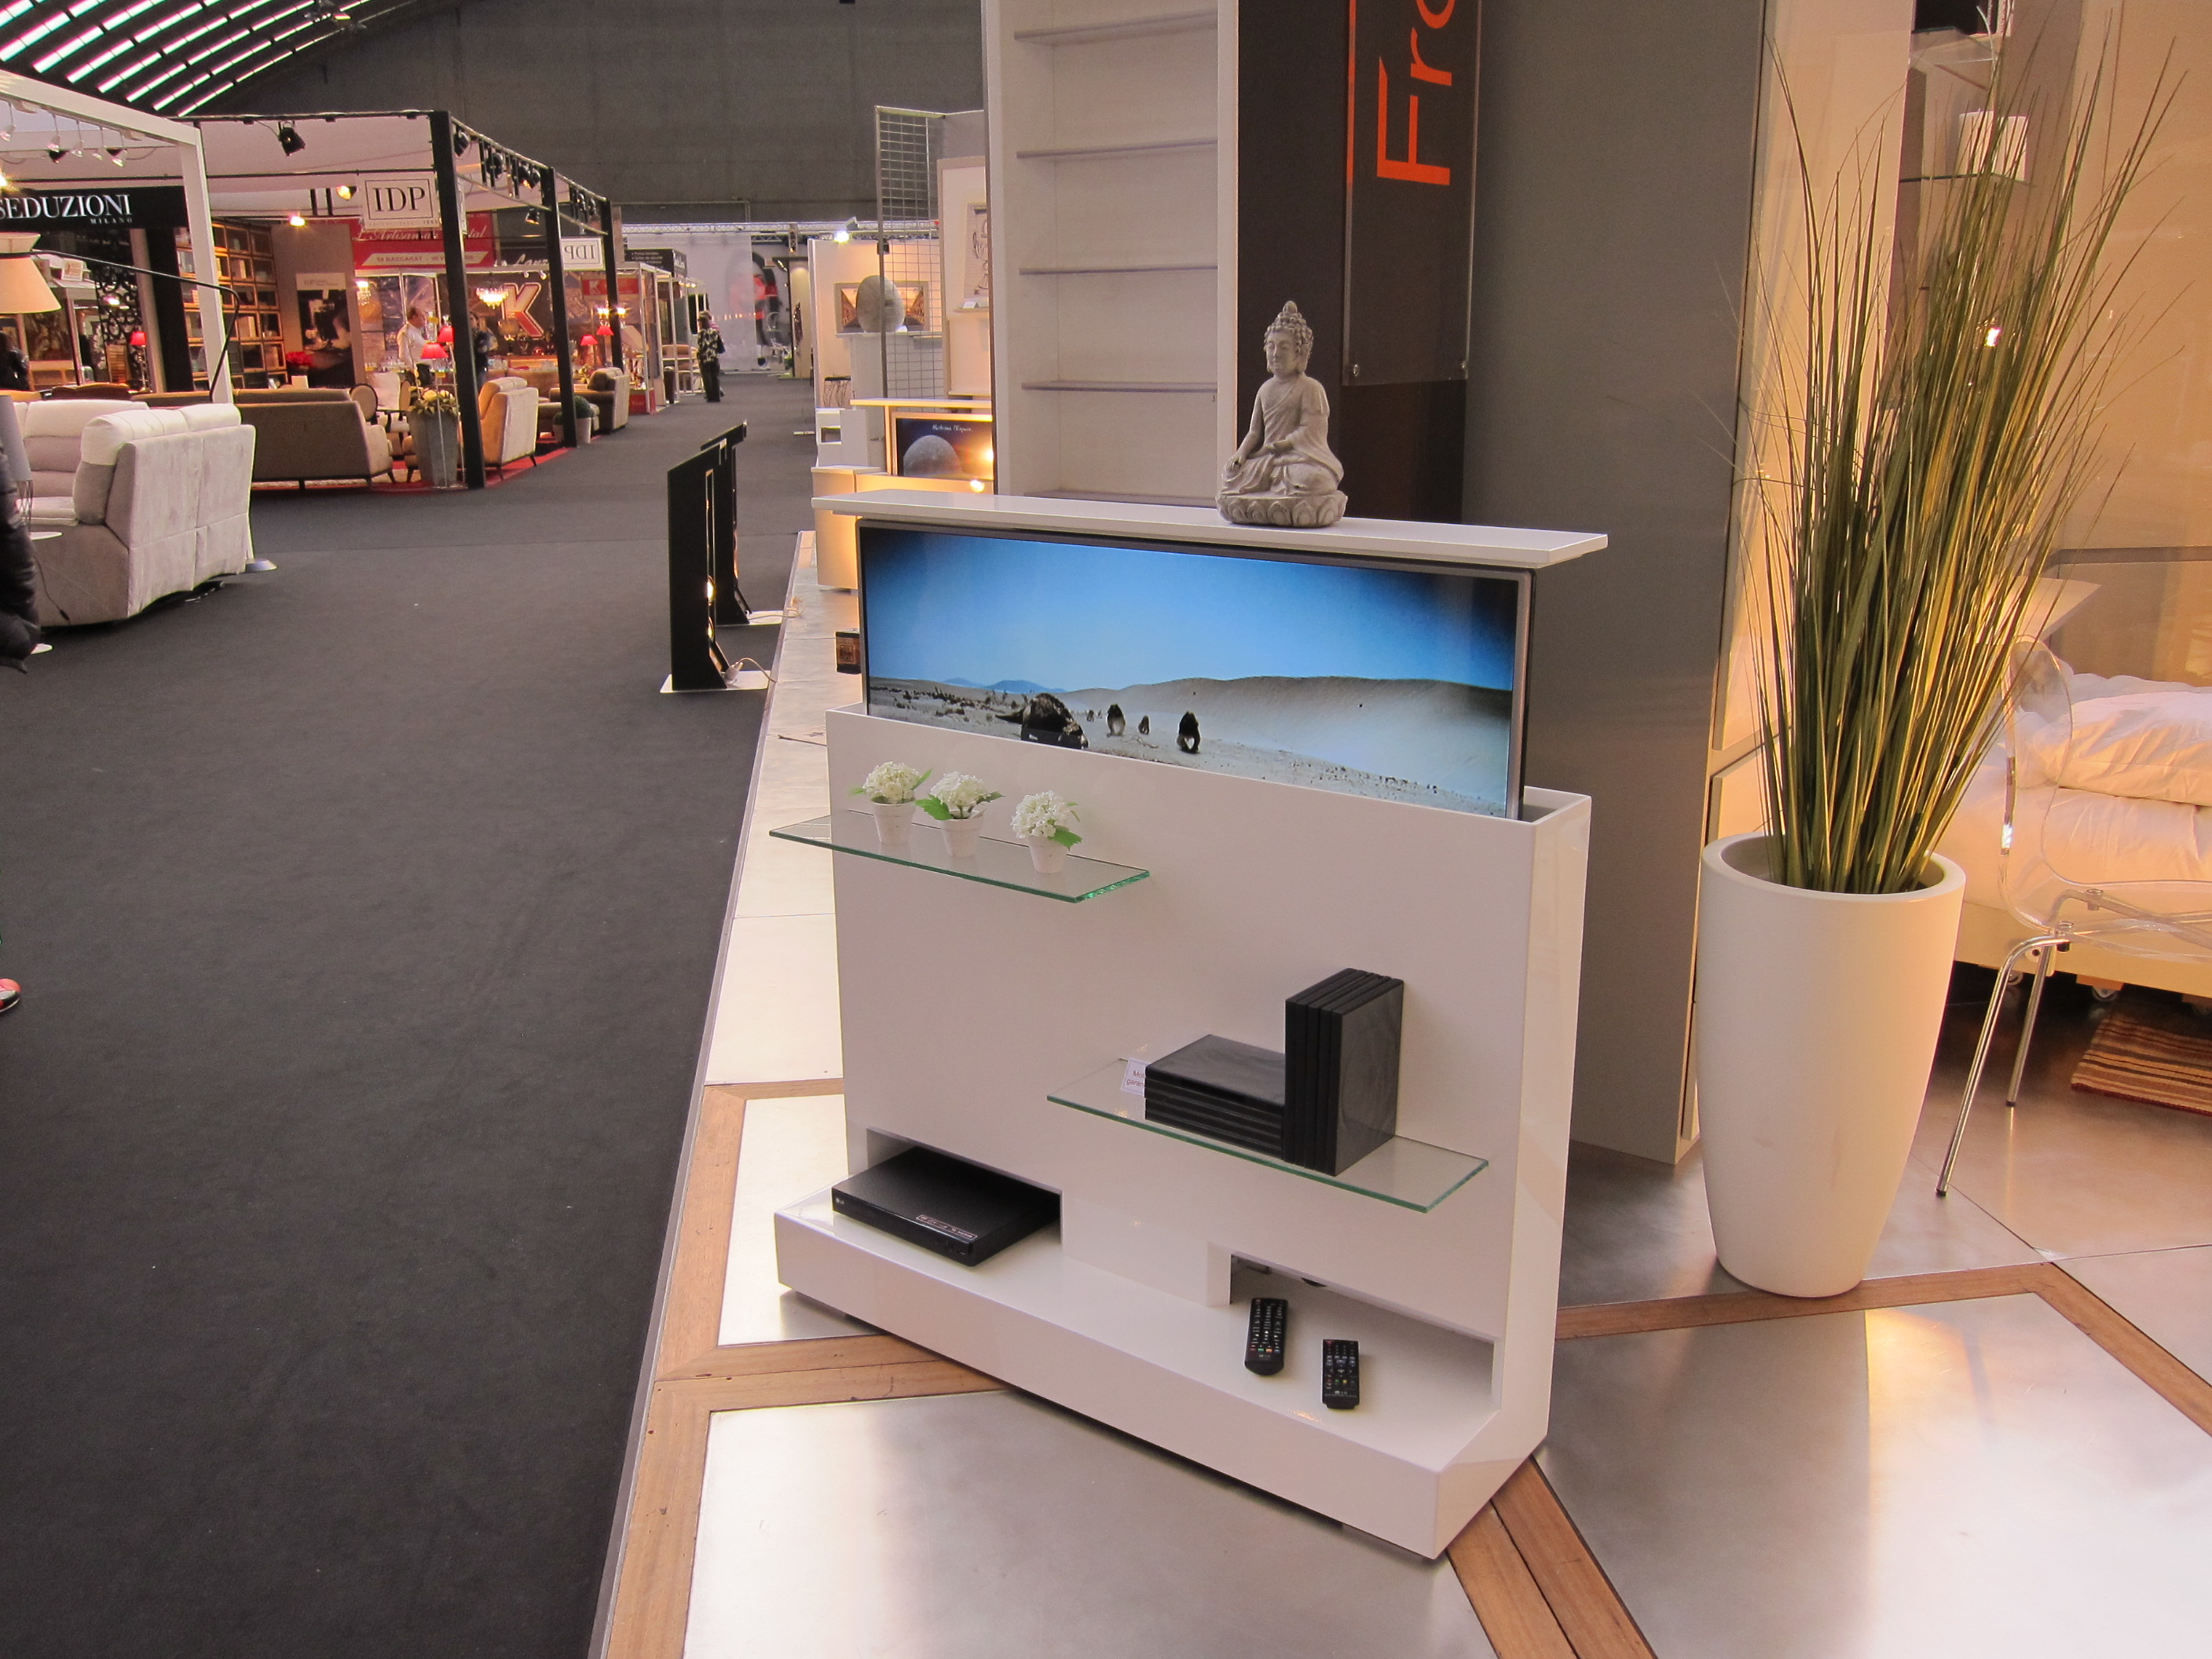 Tv Escamotable Meuble - Le Mobilier Gain De Place Fran Ois Desile[mjhdah]https://www.cobra.fr/media/catalog/product/m/2/m2p2n1gl_4.png